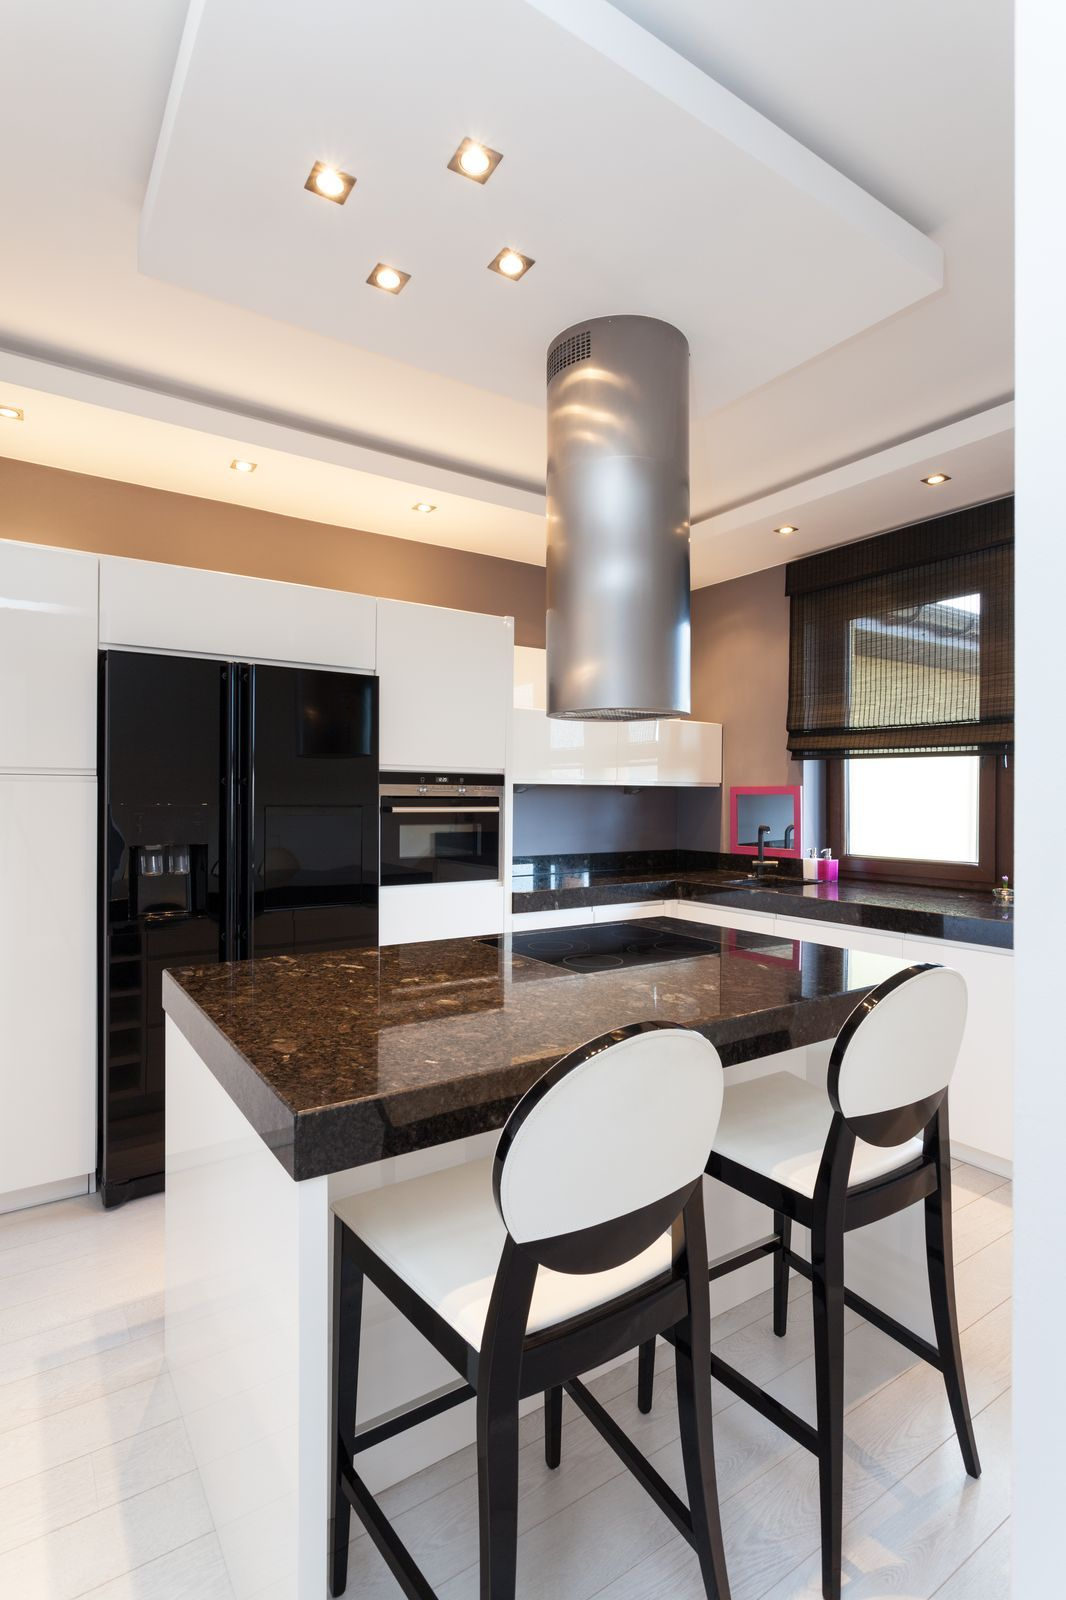 Slender, Sleek Design for a Kitchen with Natural Stone Countertops